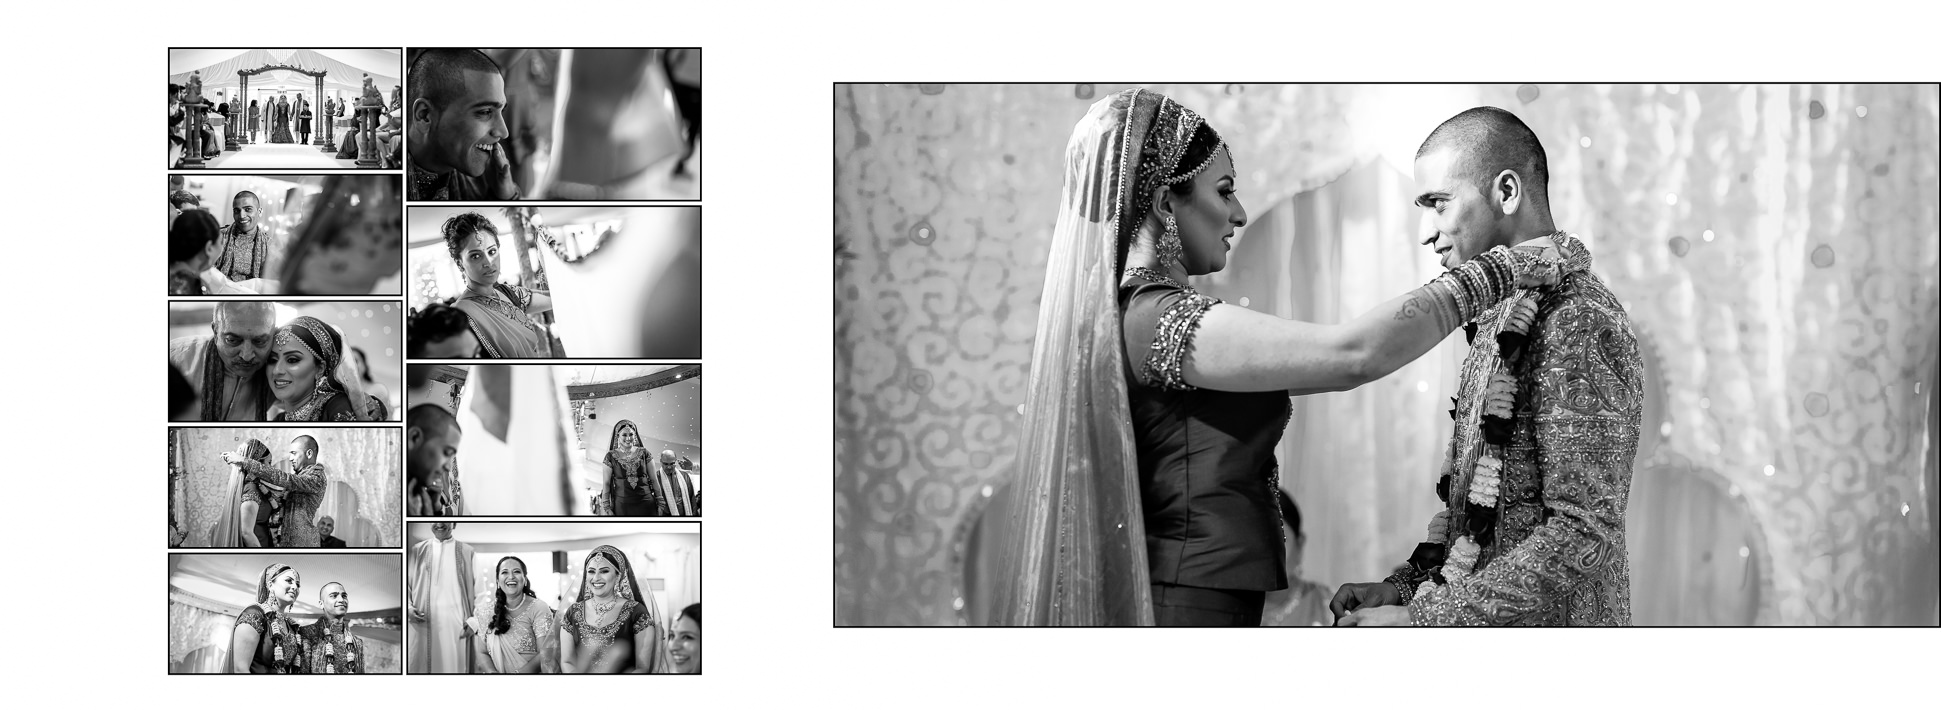 Indian wedding photographer hindu 13 of 28